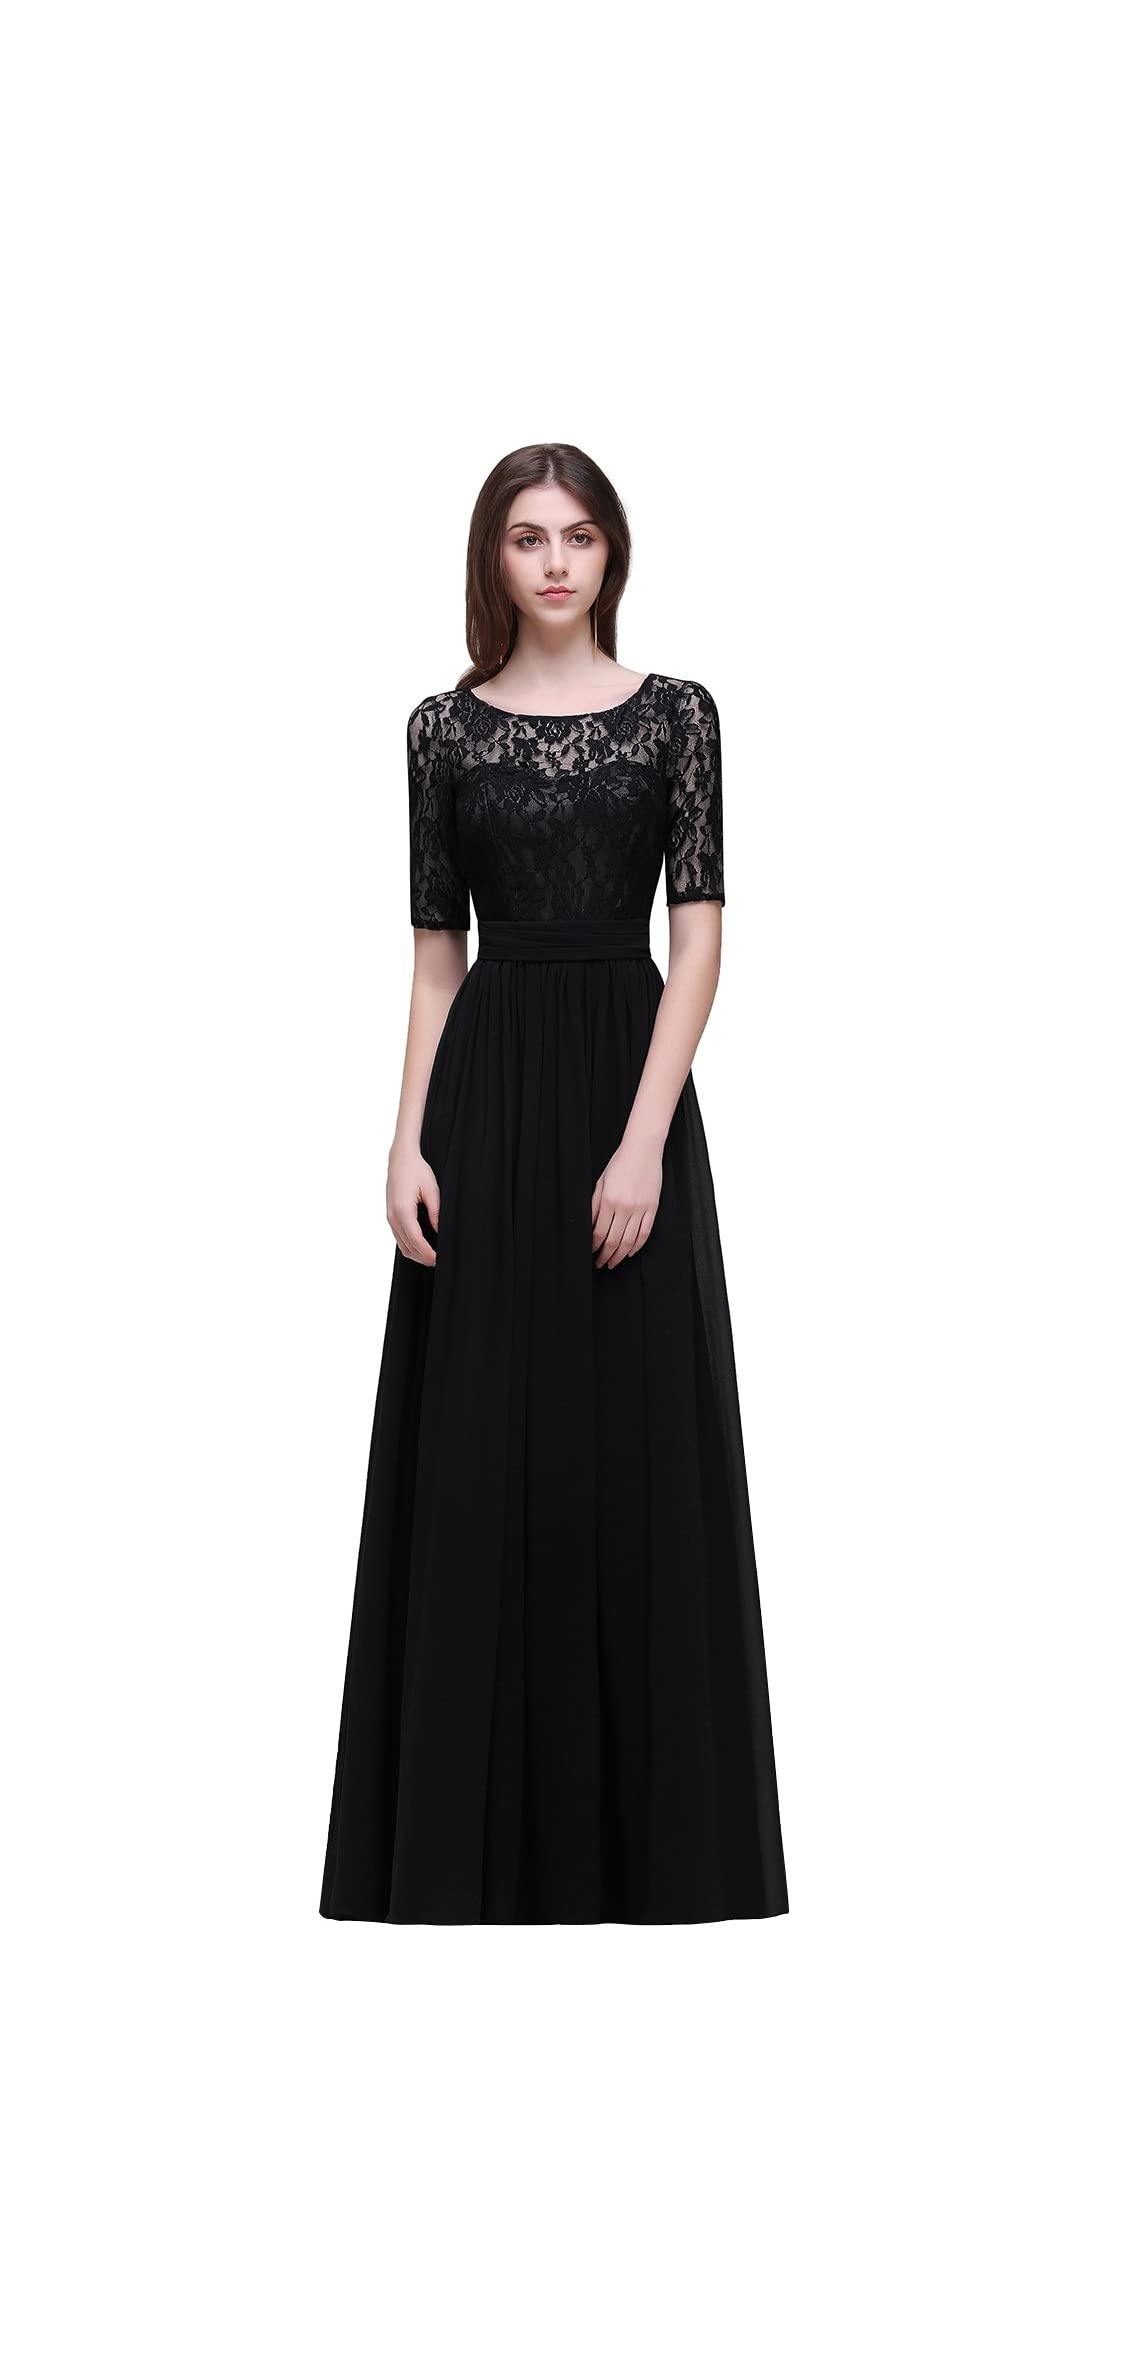 Women Lace Chiffon Evening Cocktail Dresses Sleeves For